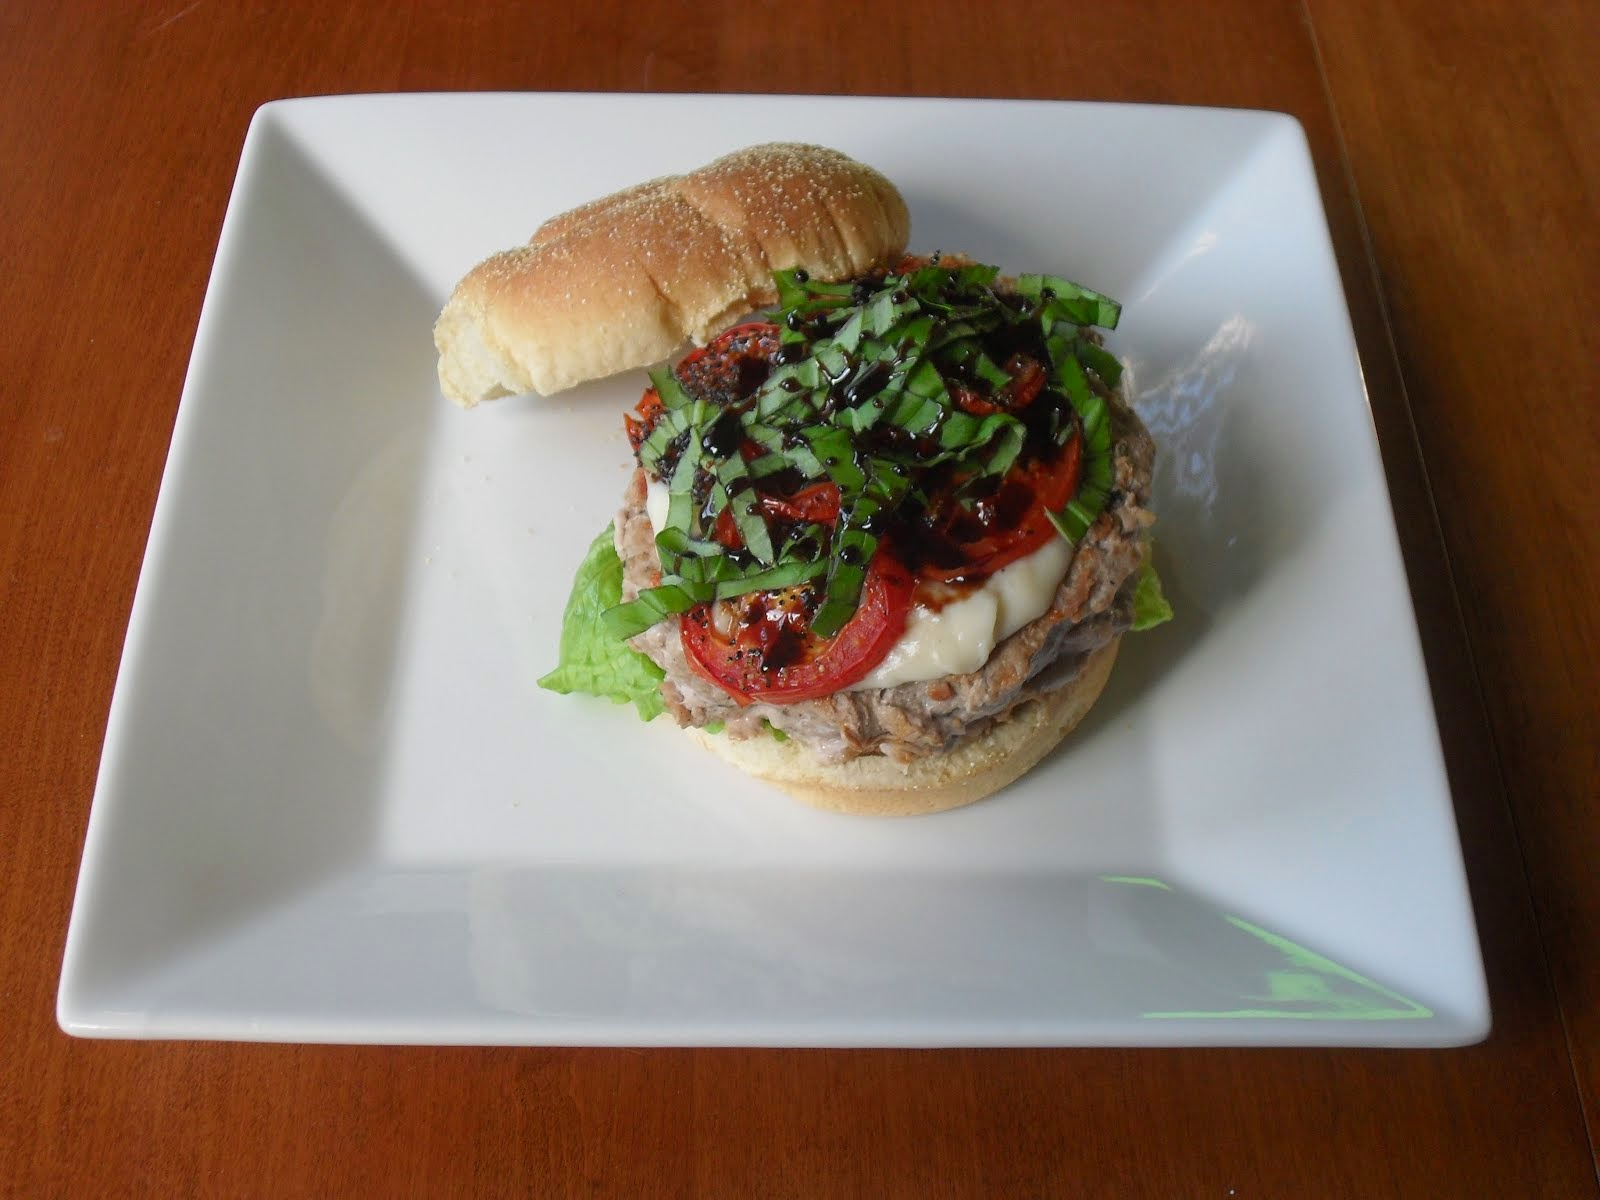 Sirloin Burgers with Garlic-Black Pepper-Parmesan Sauce & Roasted Tomatoes with Basil & Balsamic Dr